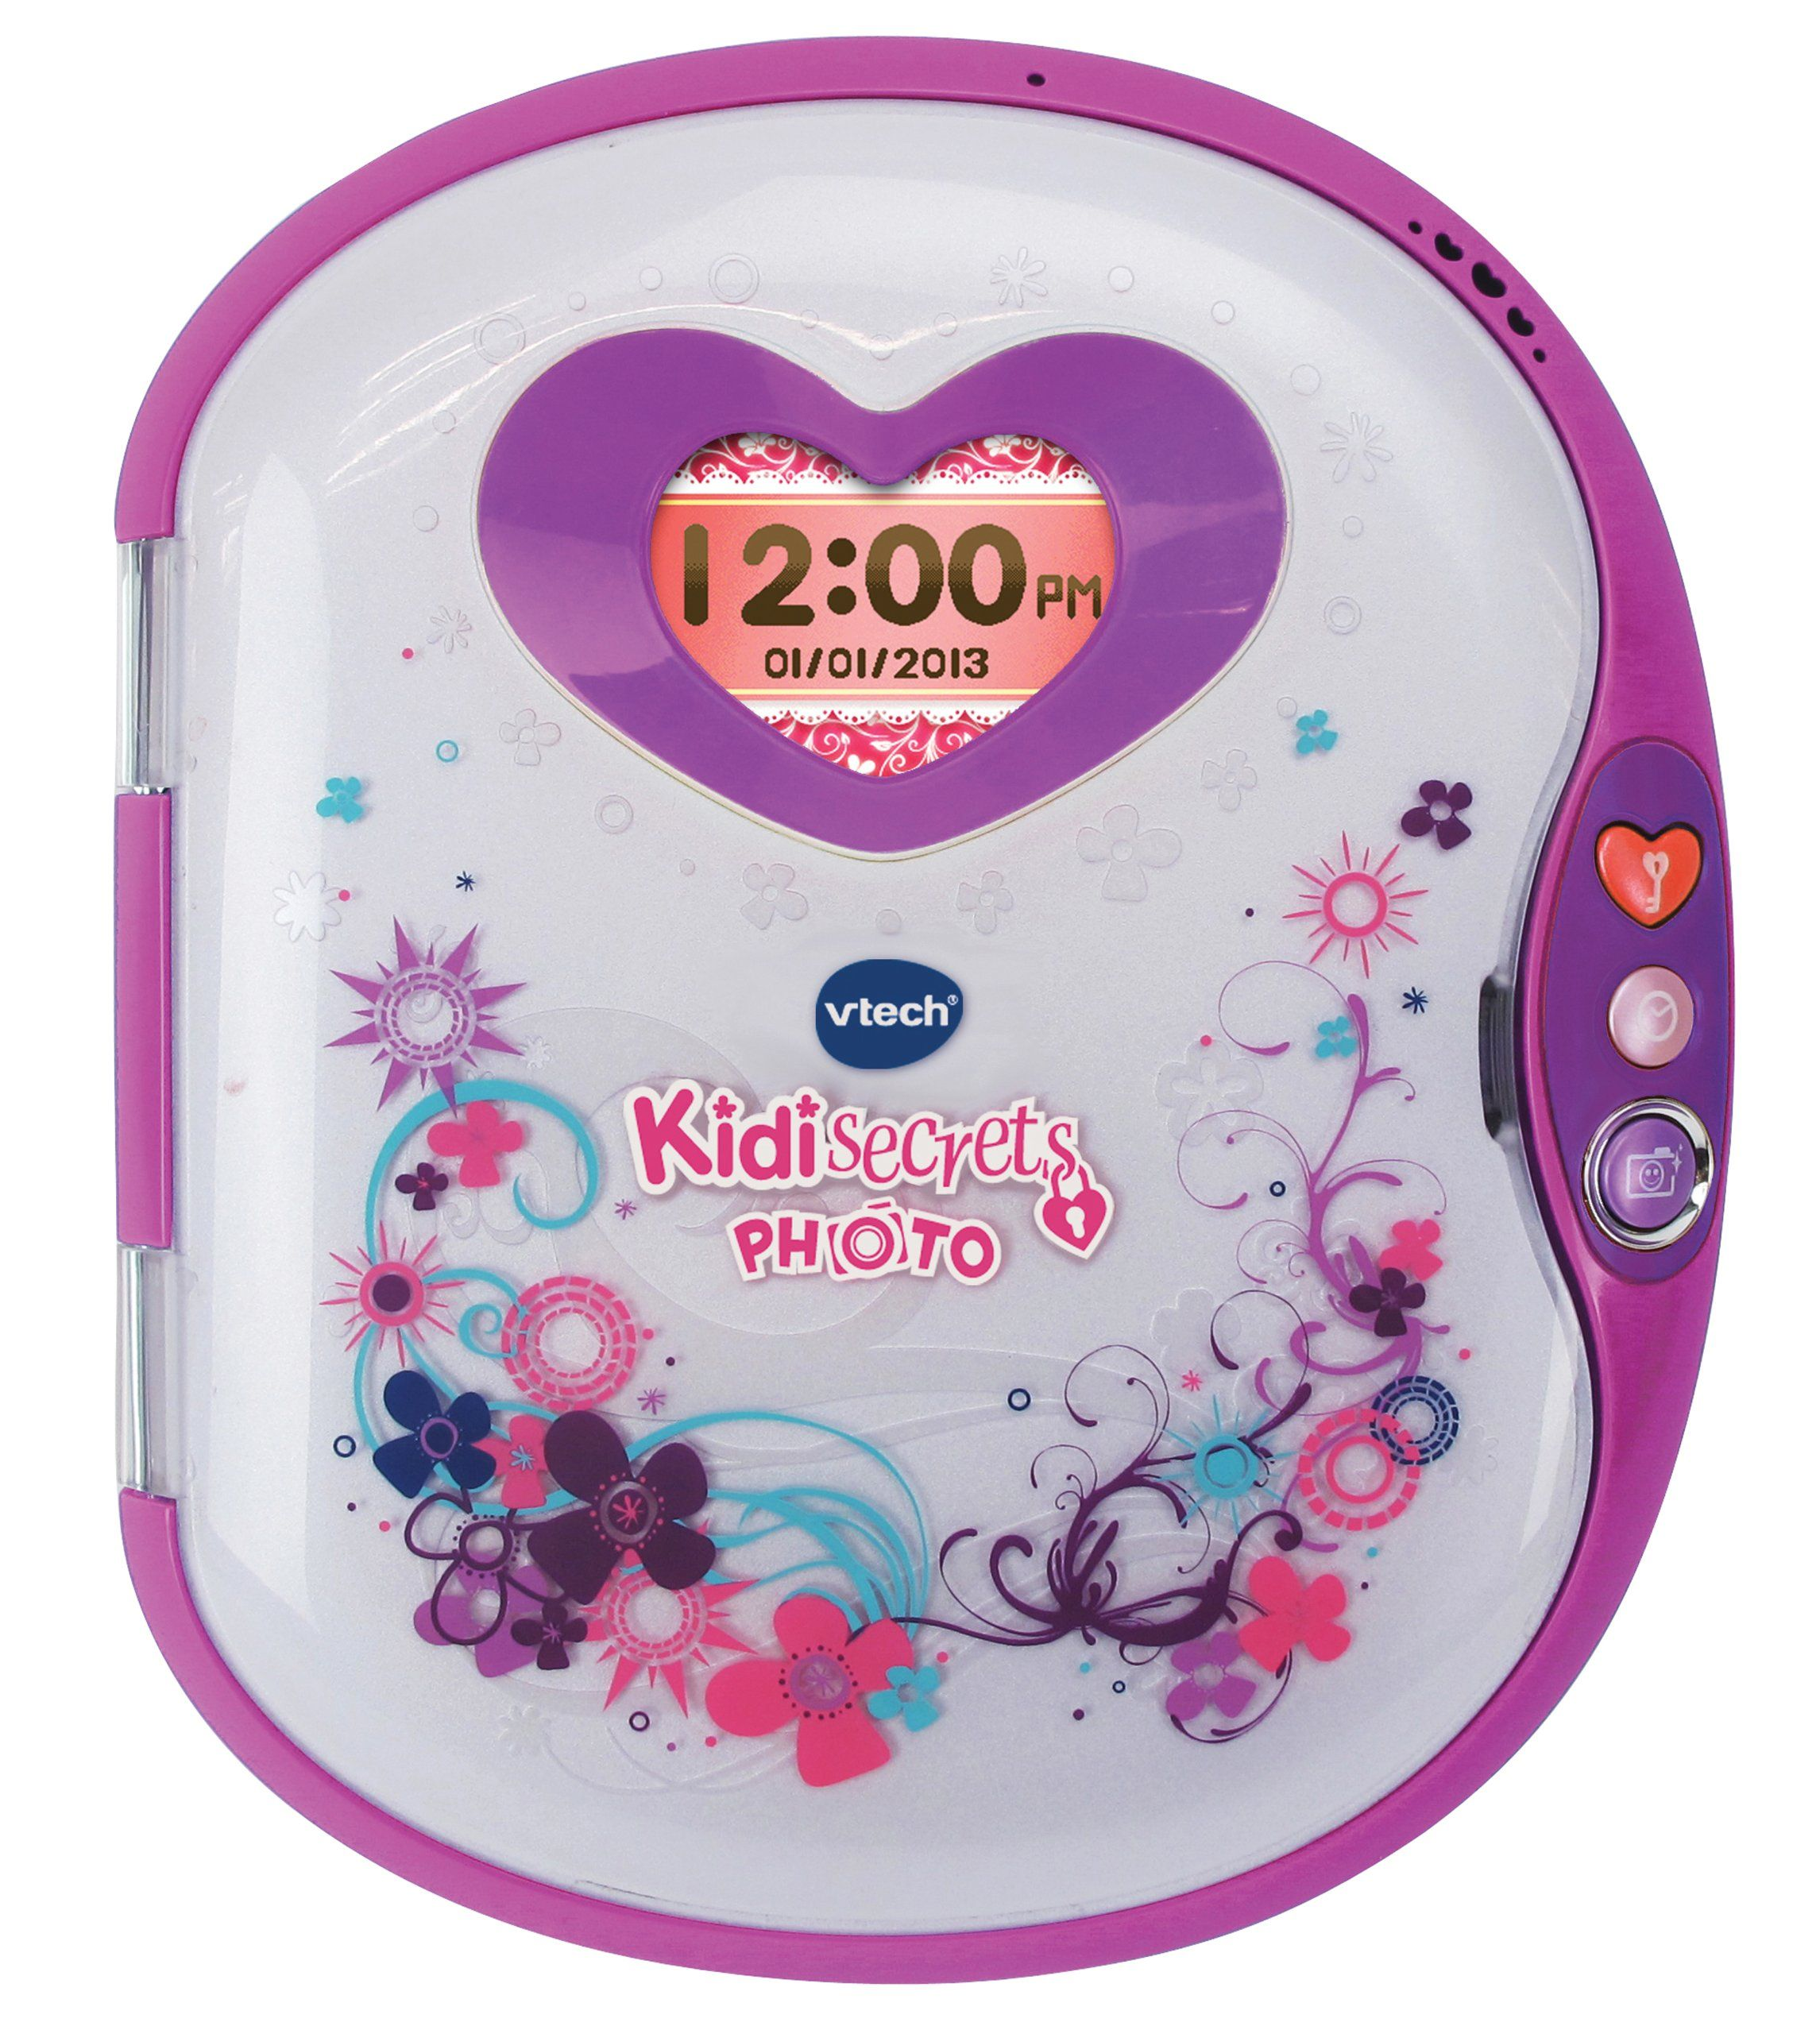 Vtech 140205 Jeu Électronique Kidisecrets Photo